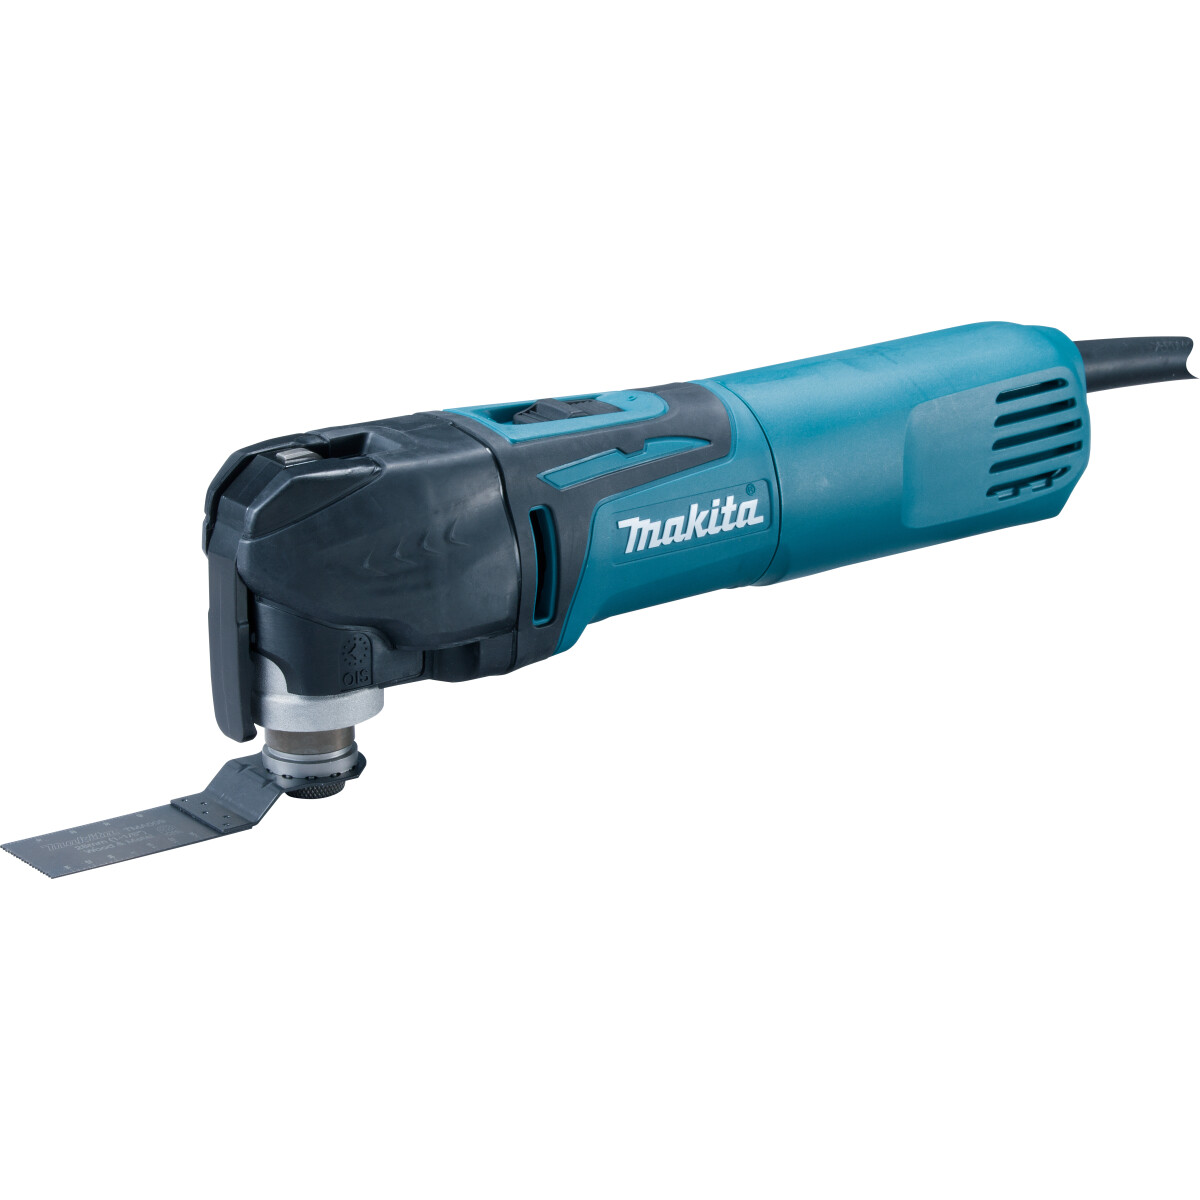 Makita TM3010CK 240V Multi Tool with Tool-less Accessory Fitting